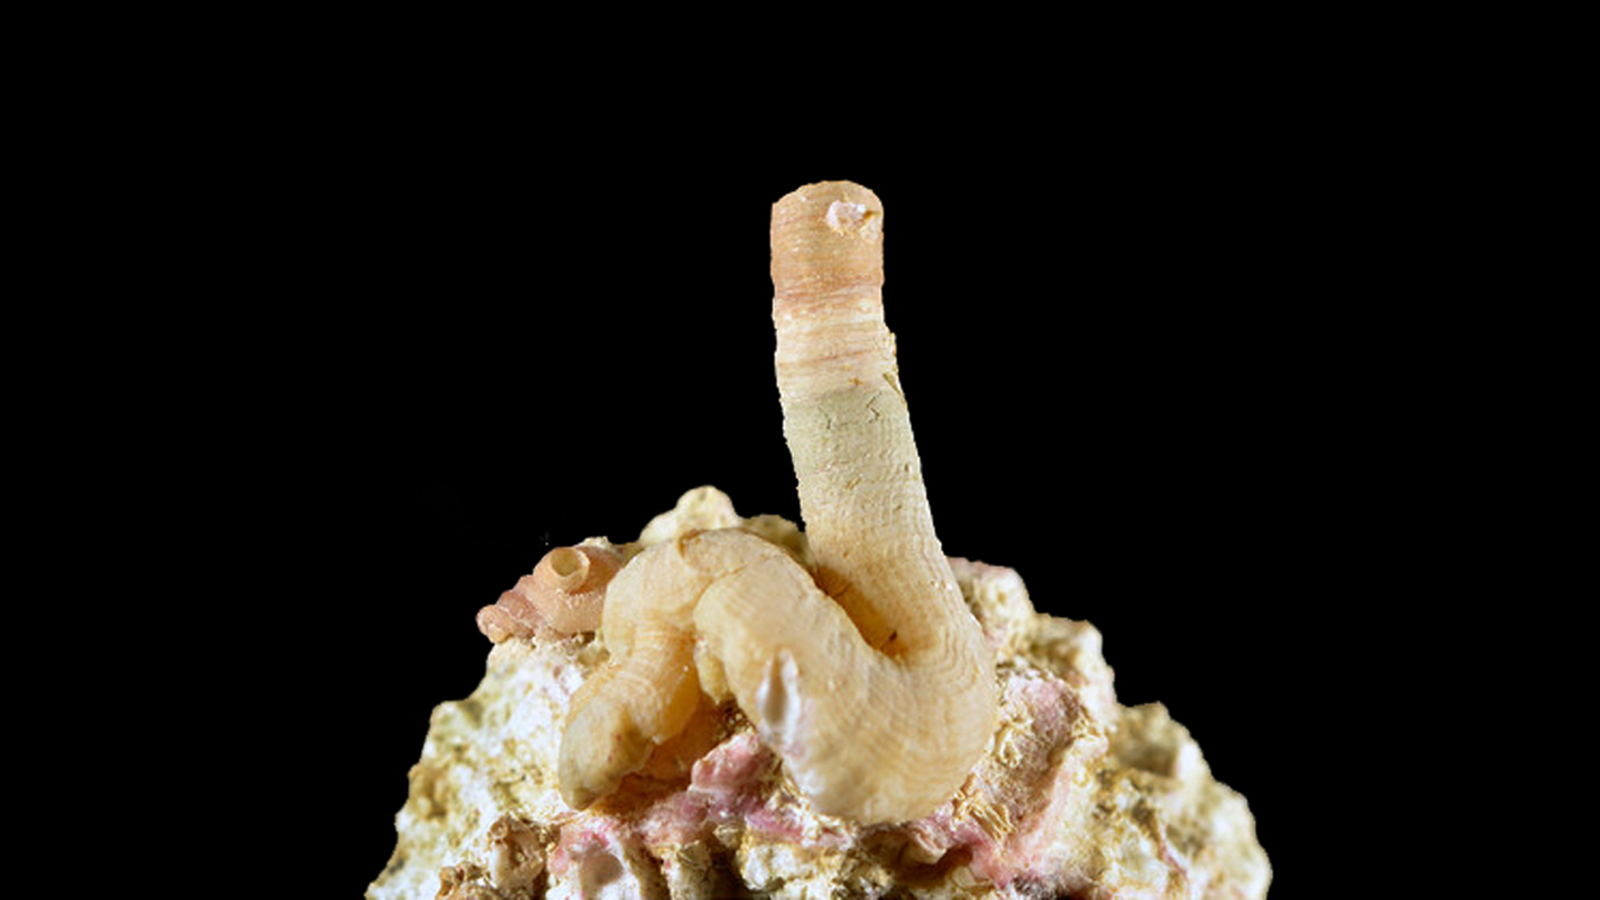 This New Species Of Worm Snail Is Basically A Penis